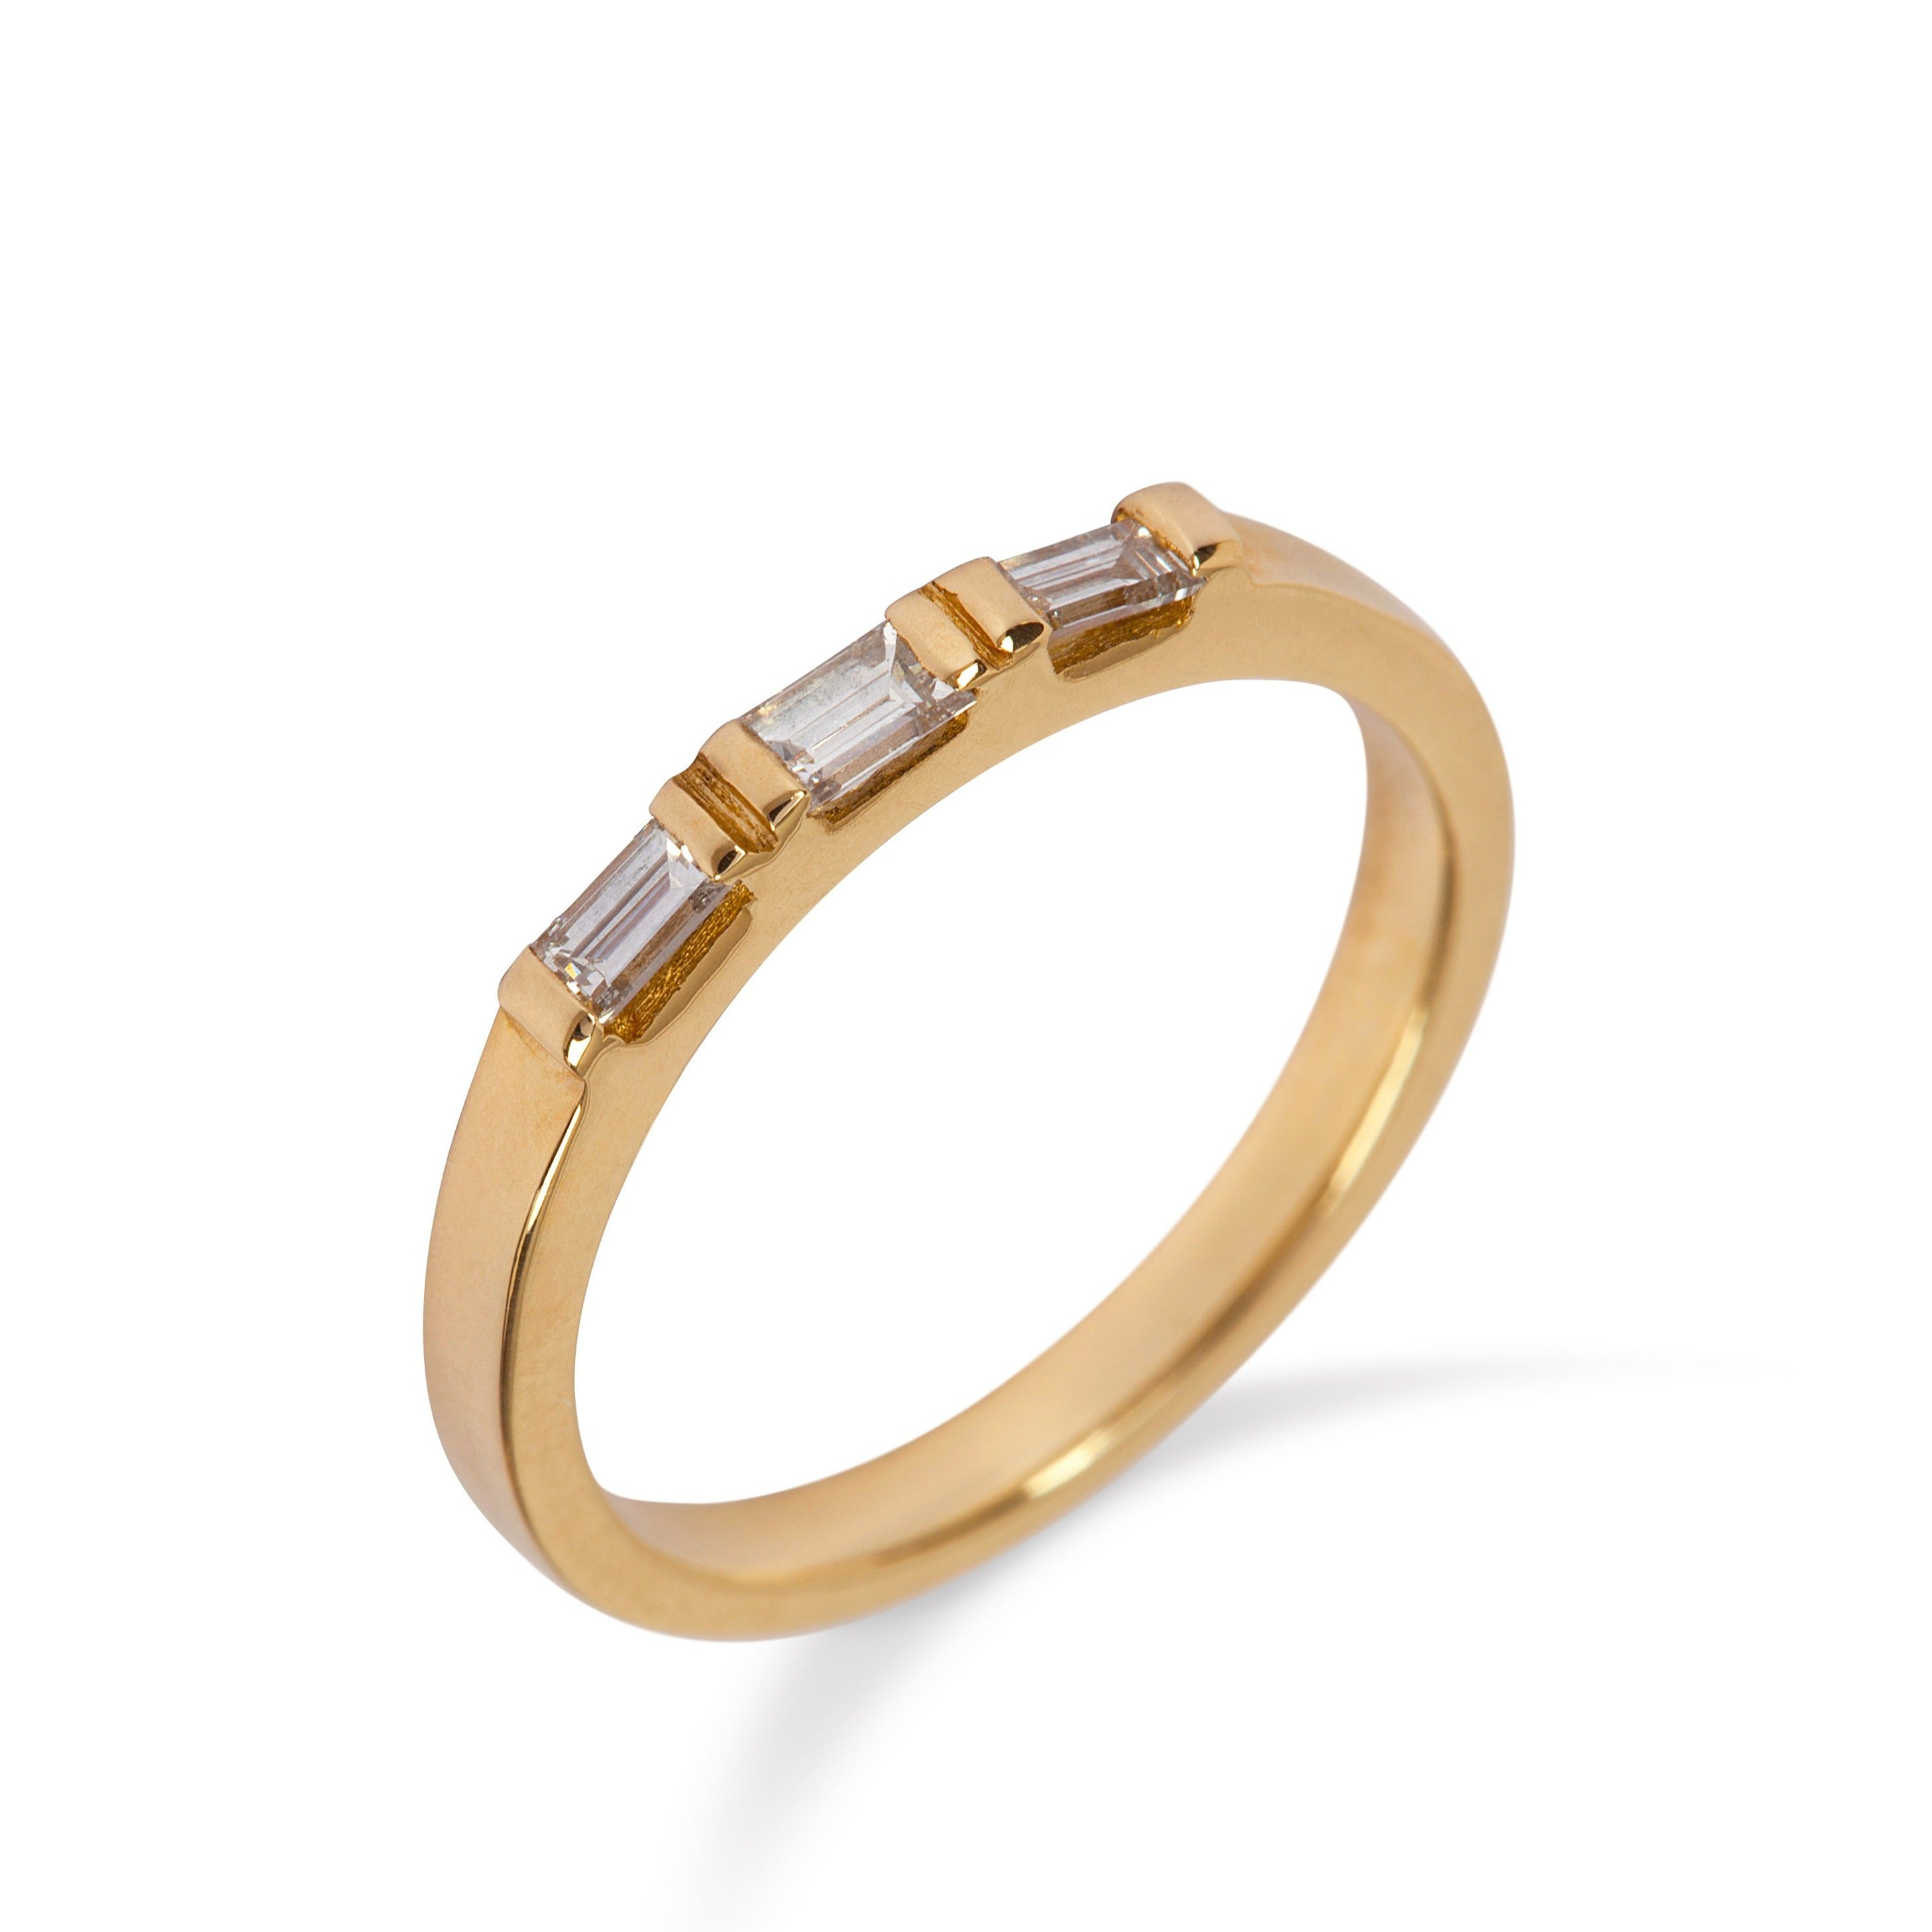 9kt Yellow Gold Ring with Three Baguette Diamonds - MoMuse Jewellery